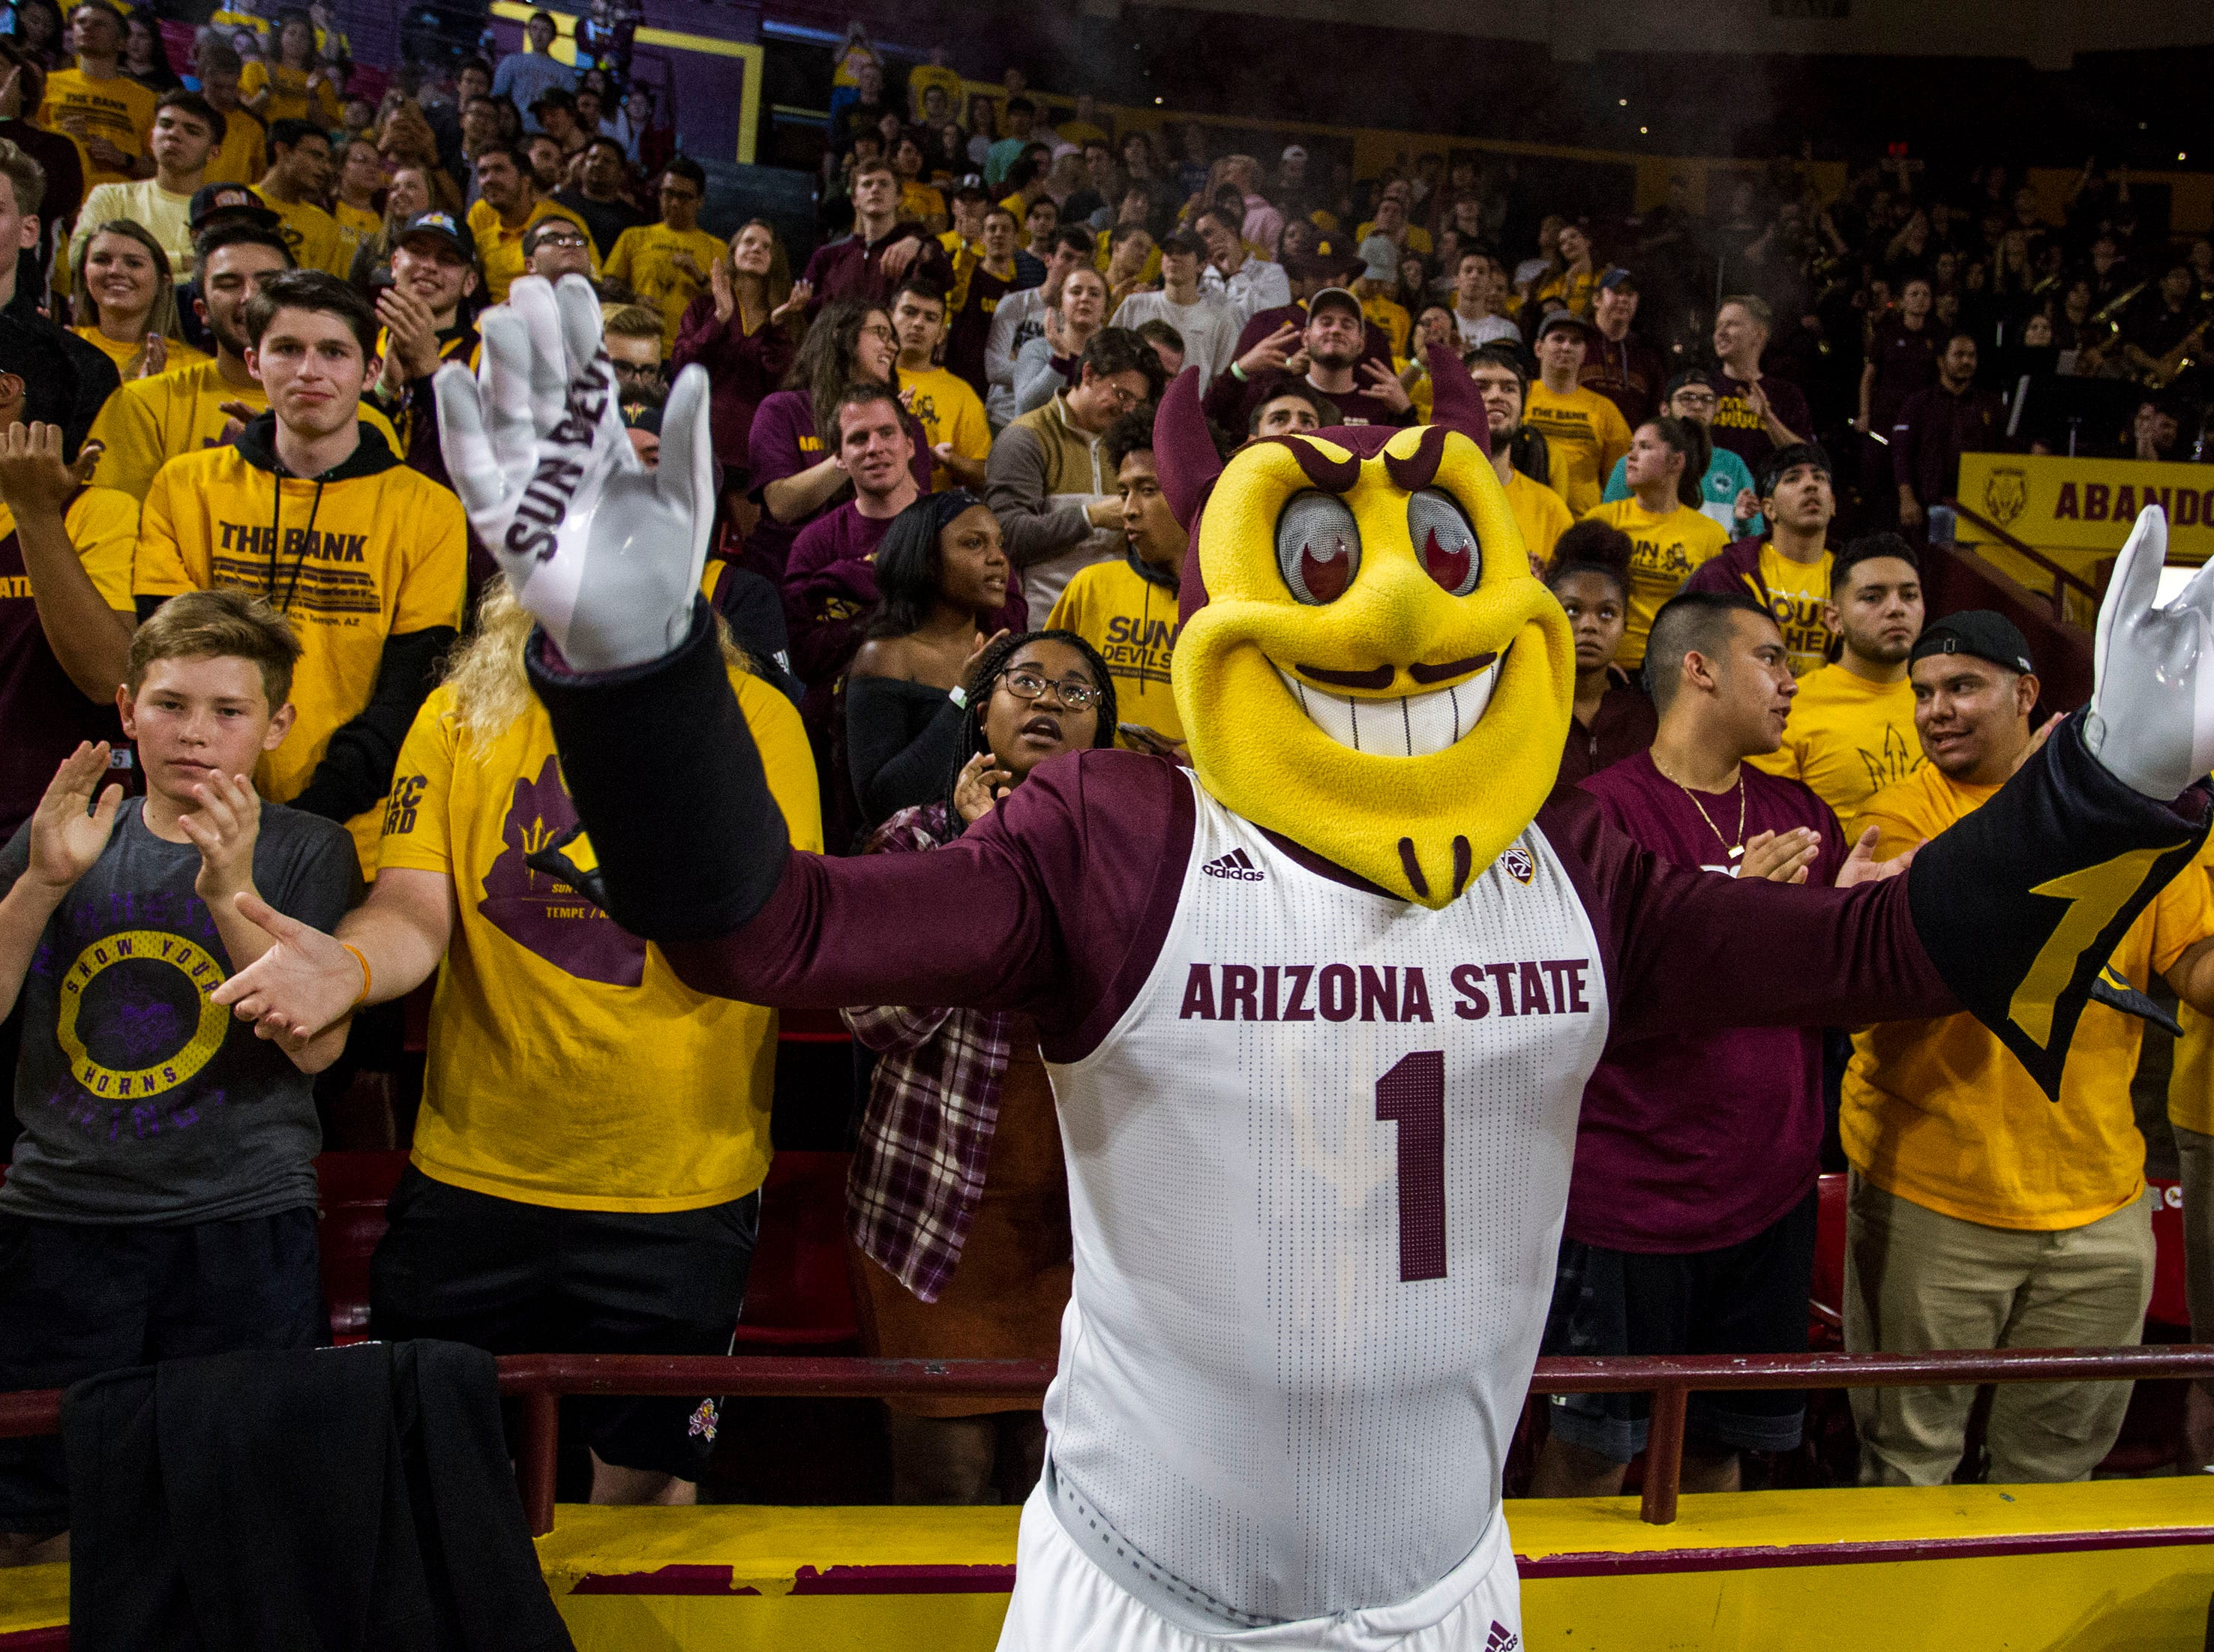 Arizona State University's mascot Sparky leads the student section during the first half of their game with Nebraska Omaha in Tempe, Wednesday, Nov.28,  2018. Darryl Webb/Special for the Republic